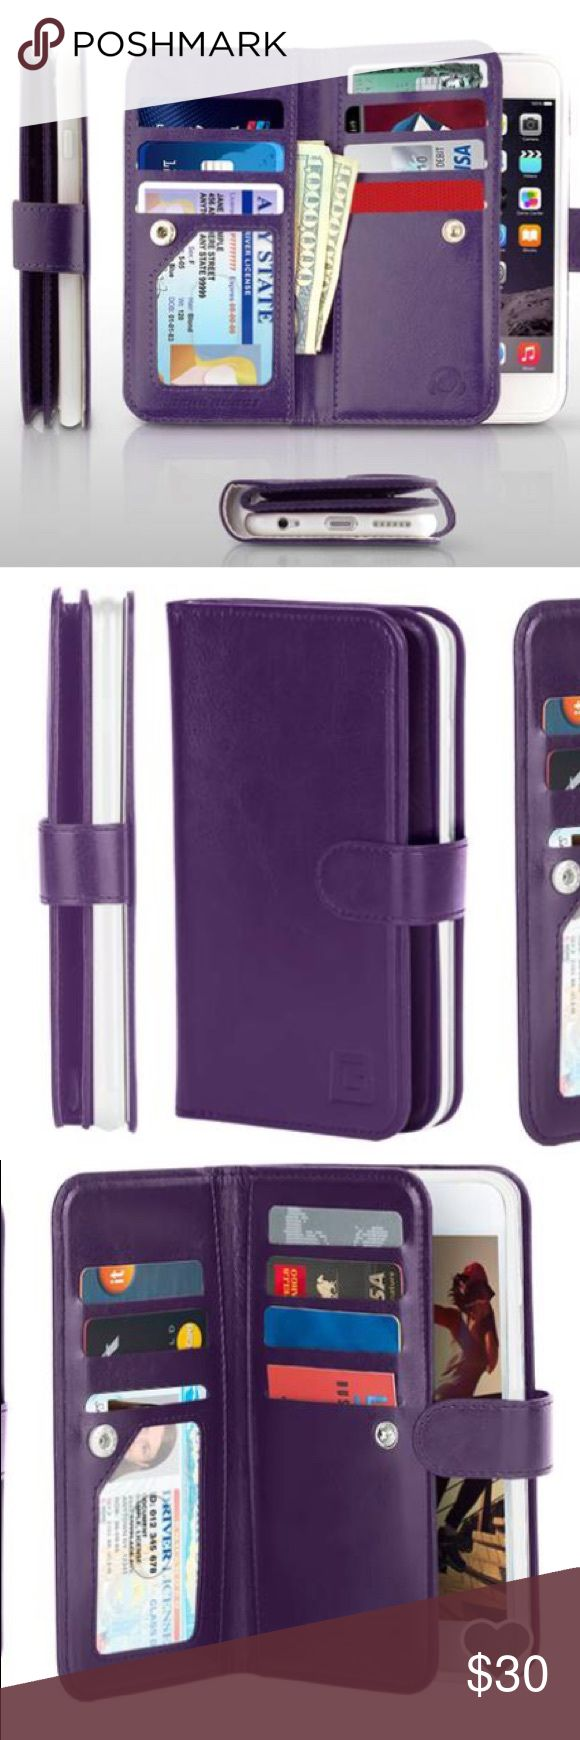 Gear Beast Dual Folio Wallet Case - iPhone 6s Plus Gear Beast Dual Folio Wallet Case fits iPhone 6s Plus. Purple as pictured. Awesome portable way to carry your id, phone, cash and cards with you. Wristlet strap included and is removable. I ordered the wrong size on my first order and LOVE mine! Super convenient way to keep important items together when on the go!  NEW with tags, never used. iPhone, cash and cards not included. Enjoy this fun deal! Gear Beast Accessories Phone Cases